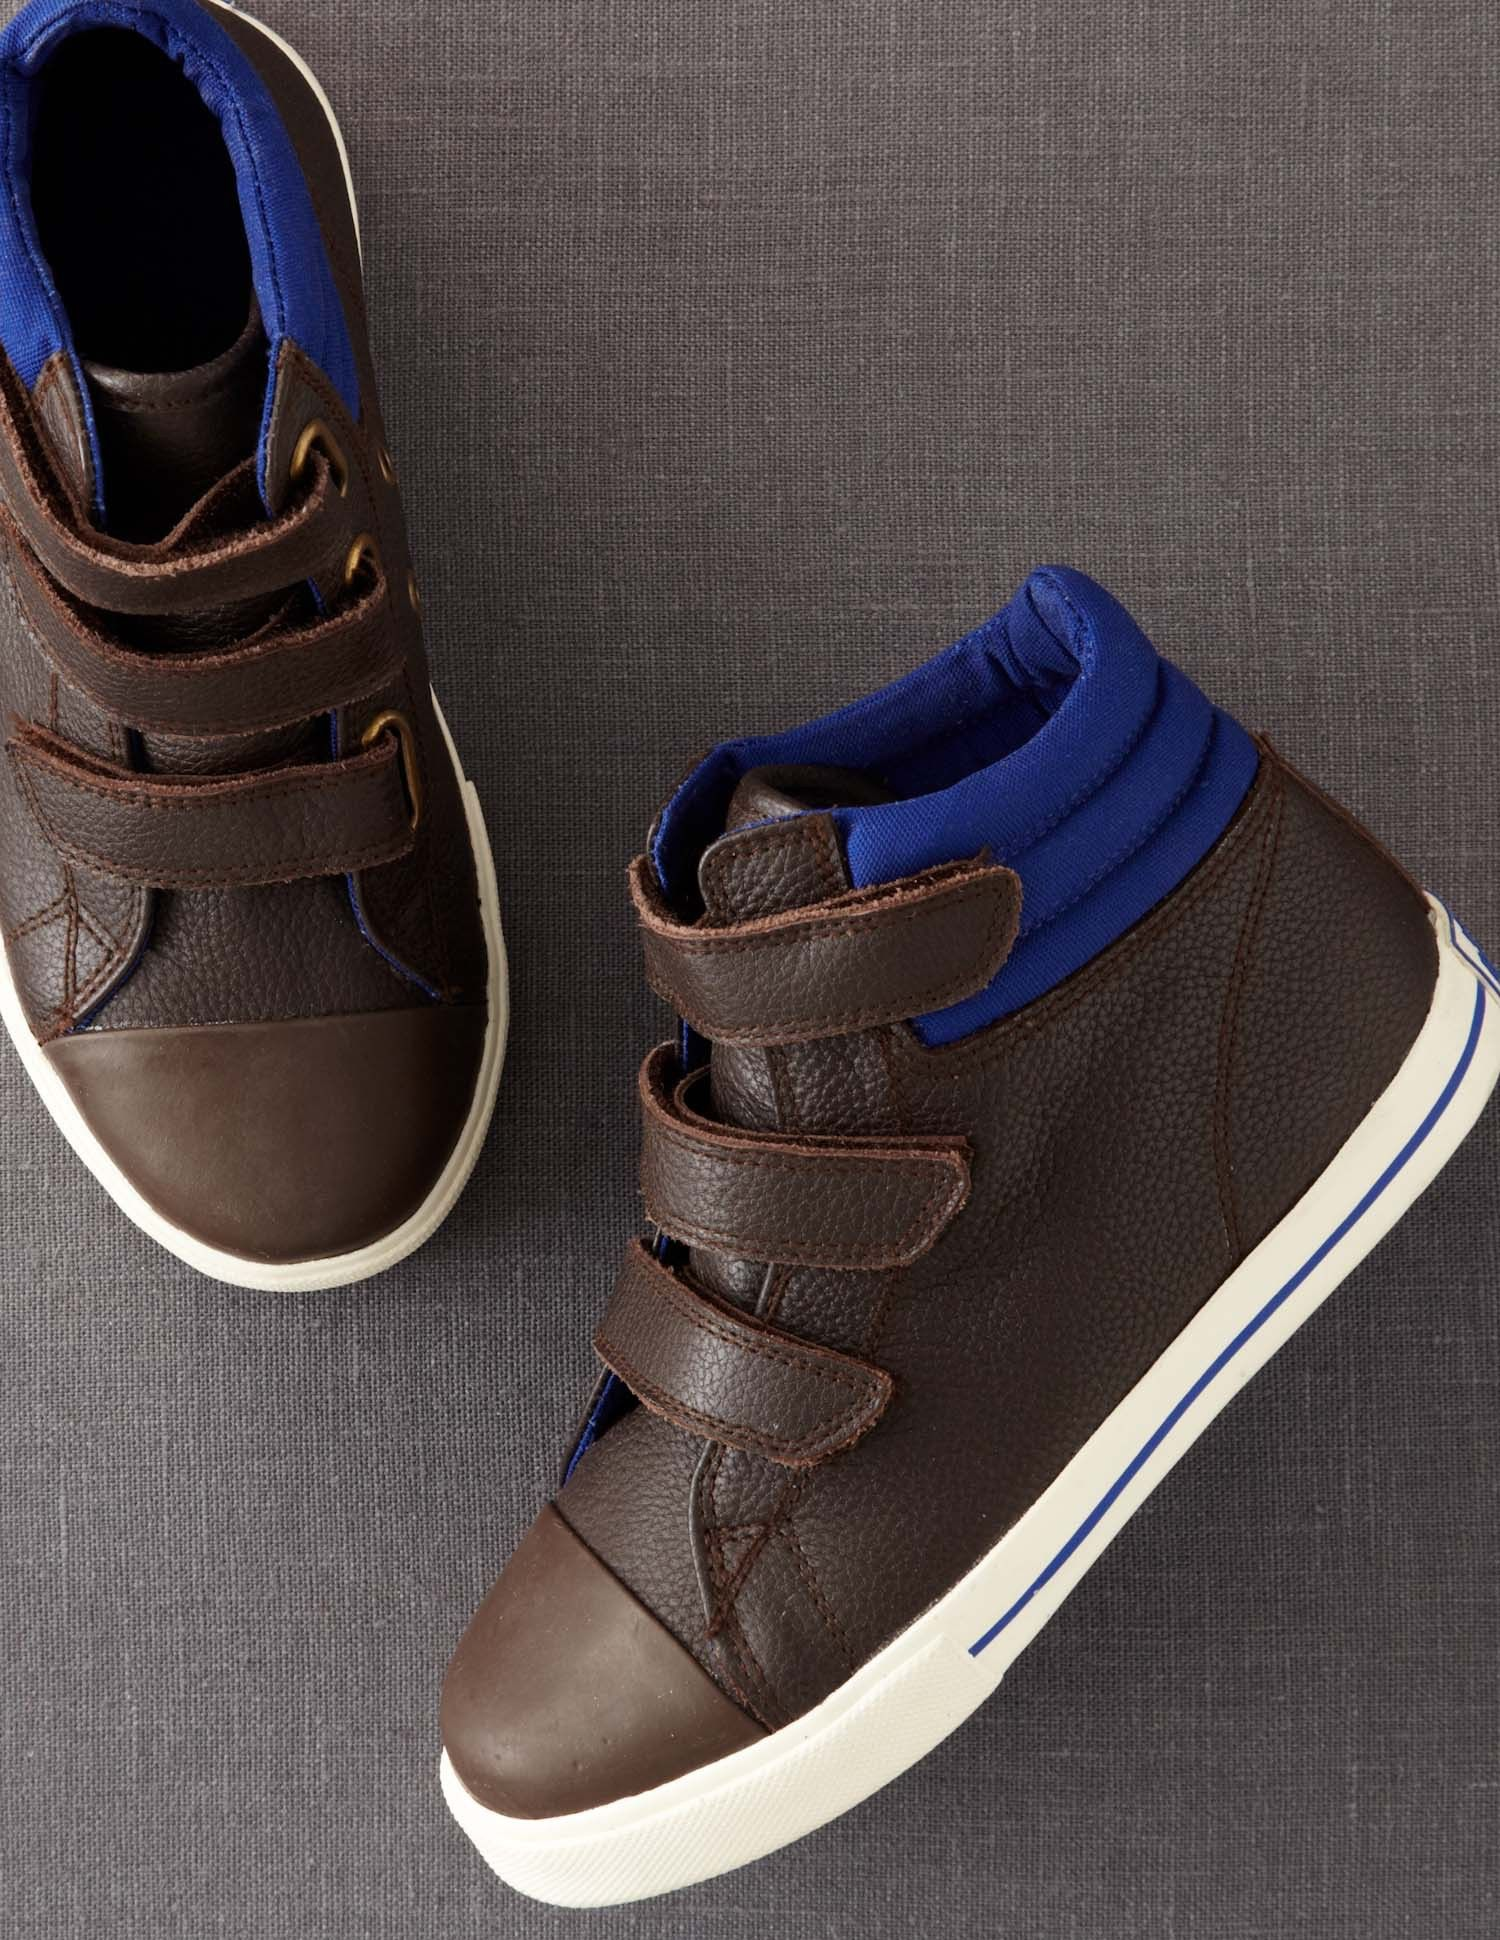 Leather High Tops 29050 Shoes Amp Boots At Boden 44 80